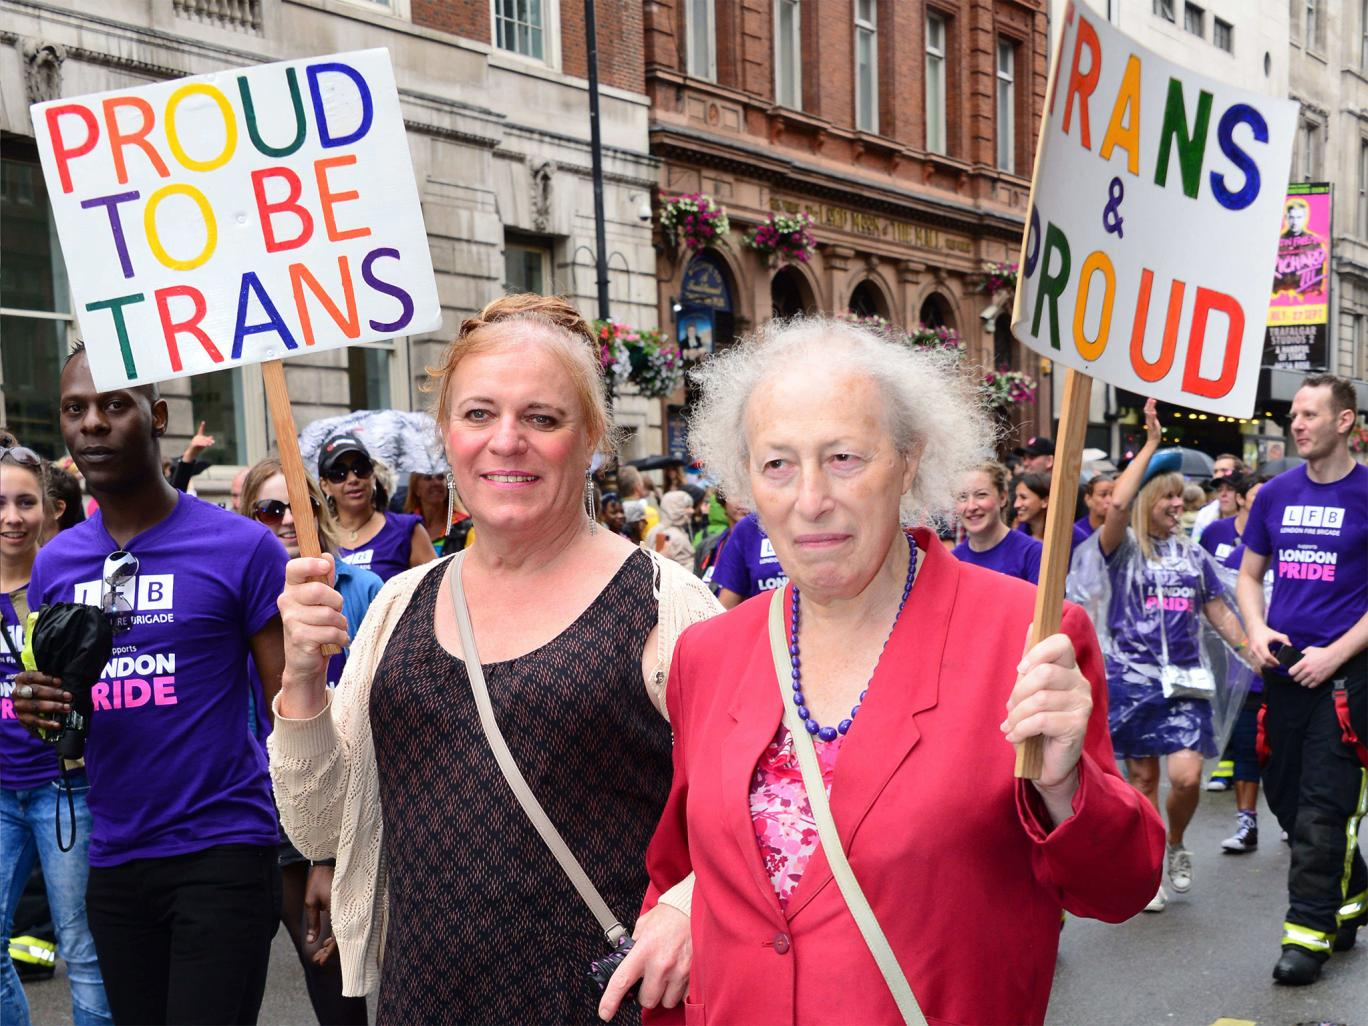 Britain urged to give transgender people full legal equality